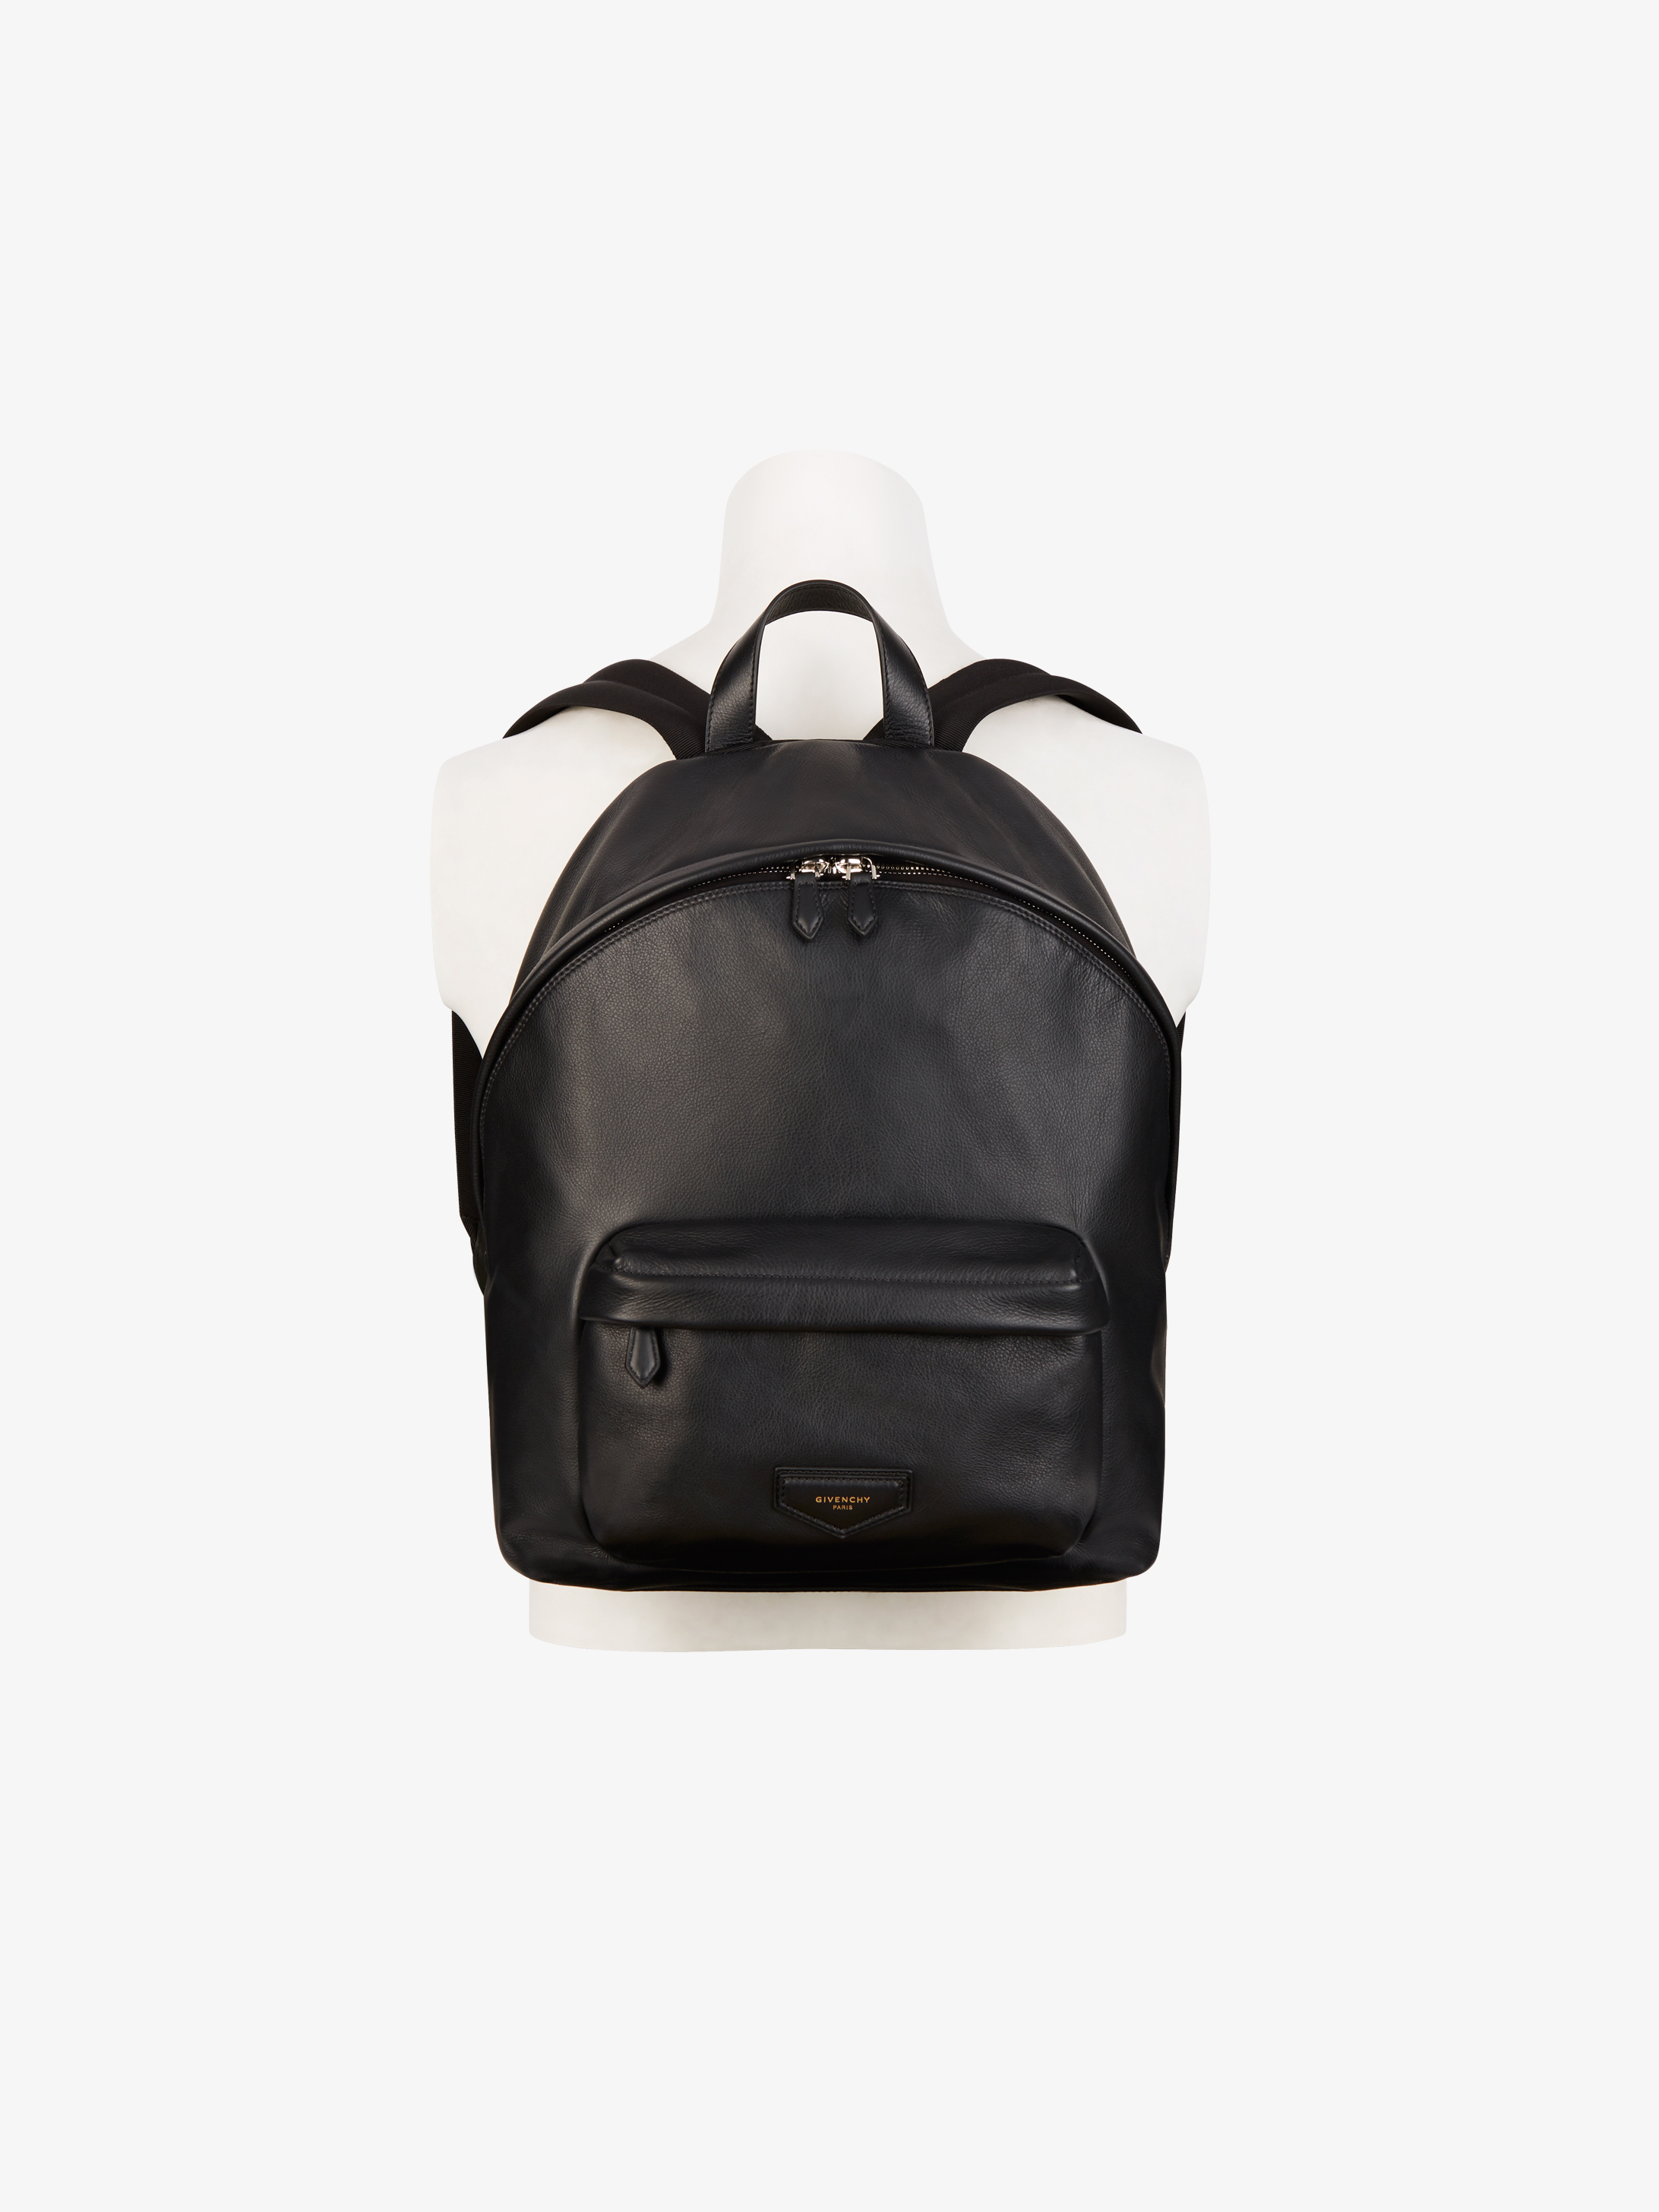 GIVENCHY patch leather backpack